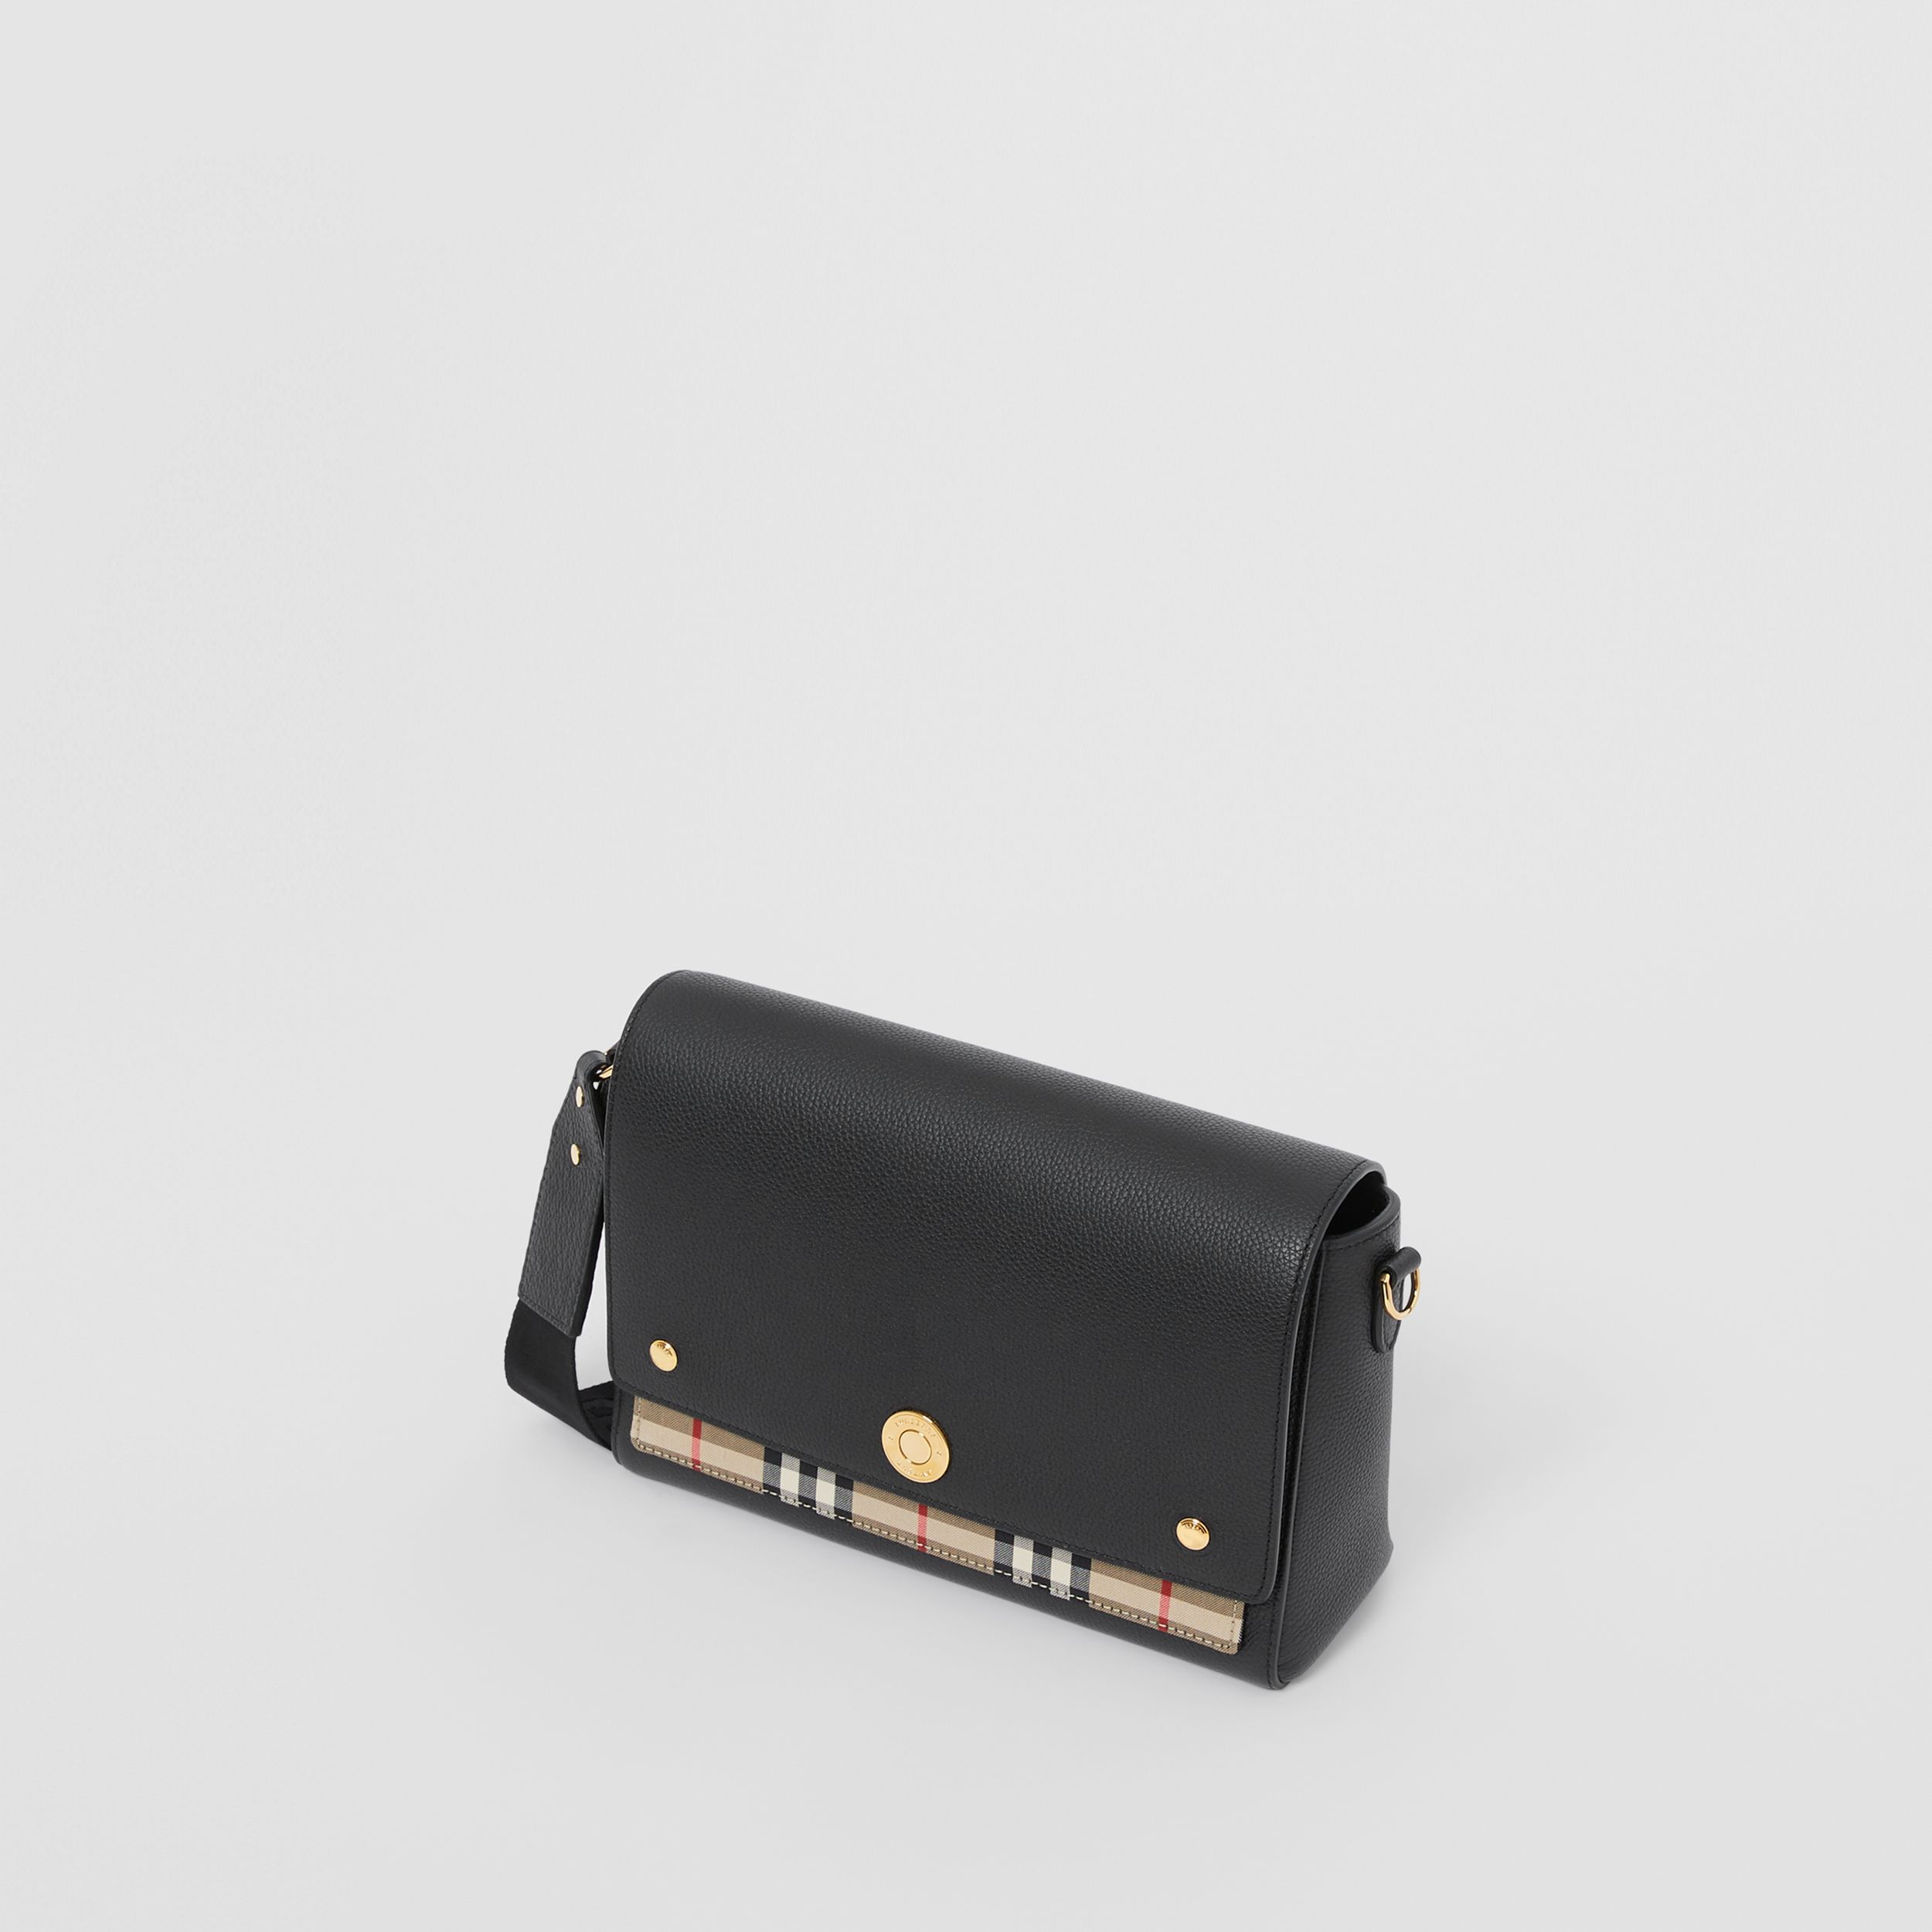 Leather and Vintage Check Note Crossbody Bag in Black - Women | Burberry - 4